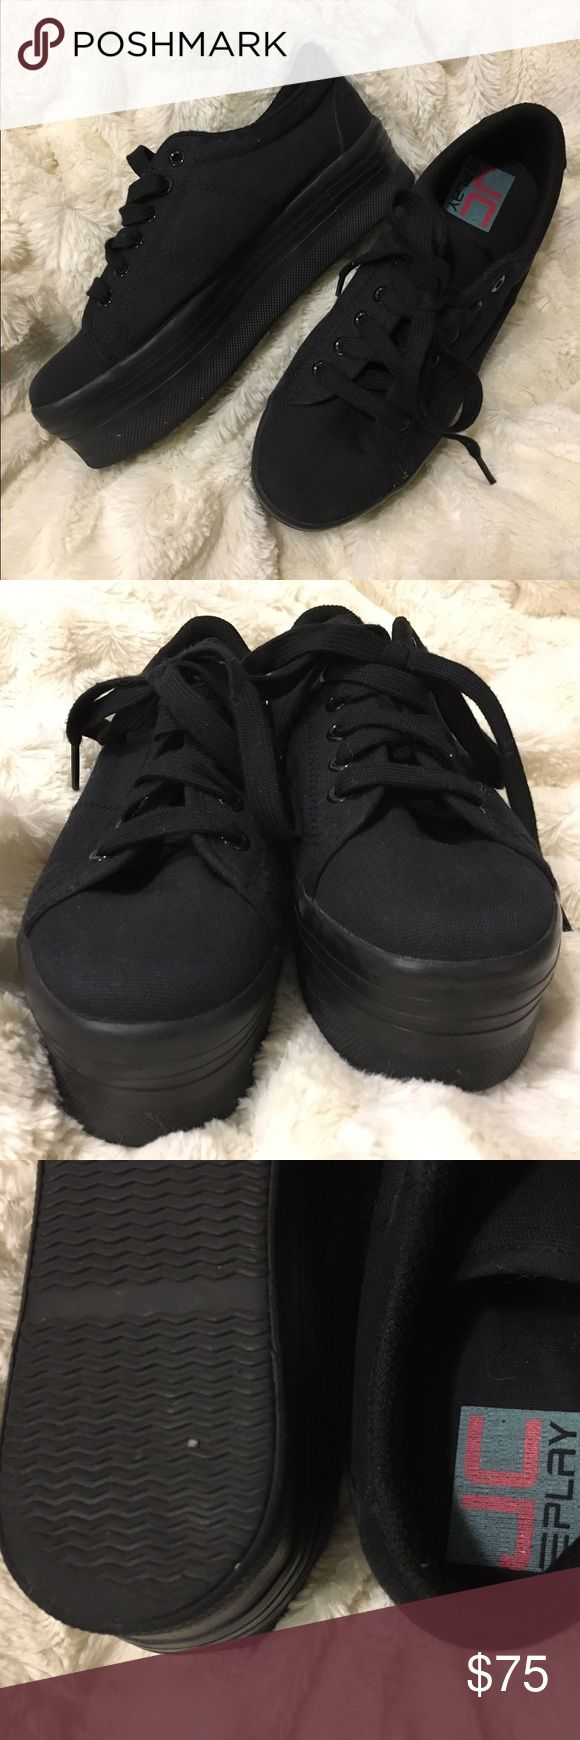 Jeffrey Campbell platform PLAY tennis shoes Jeffrey Campbell Play platform tennis shoes in all black. They are in great condition other than a little wear on the heels. Size 8 UK but I normally wear a size 7.5 and they fit perfect. These shoes are actually super comfortable and are a badass statement piece to any look! Jeffrey Campbell Shoes Platforms